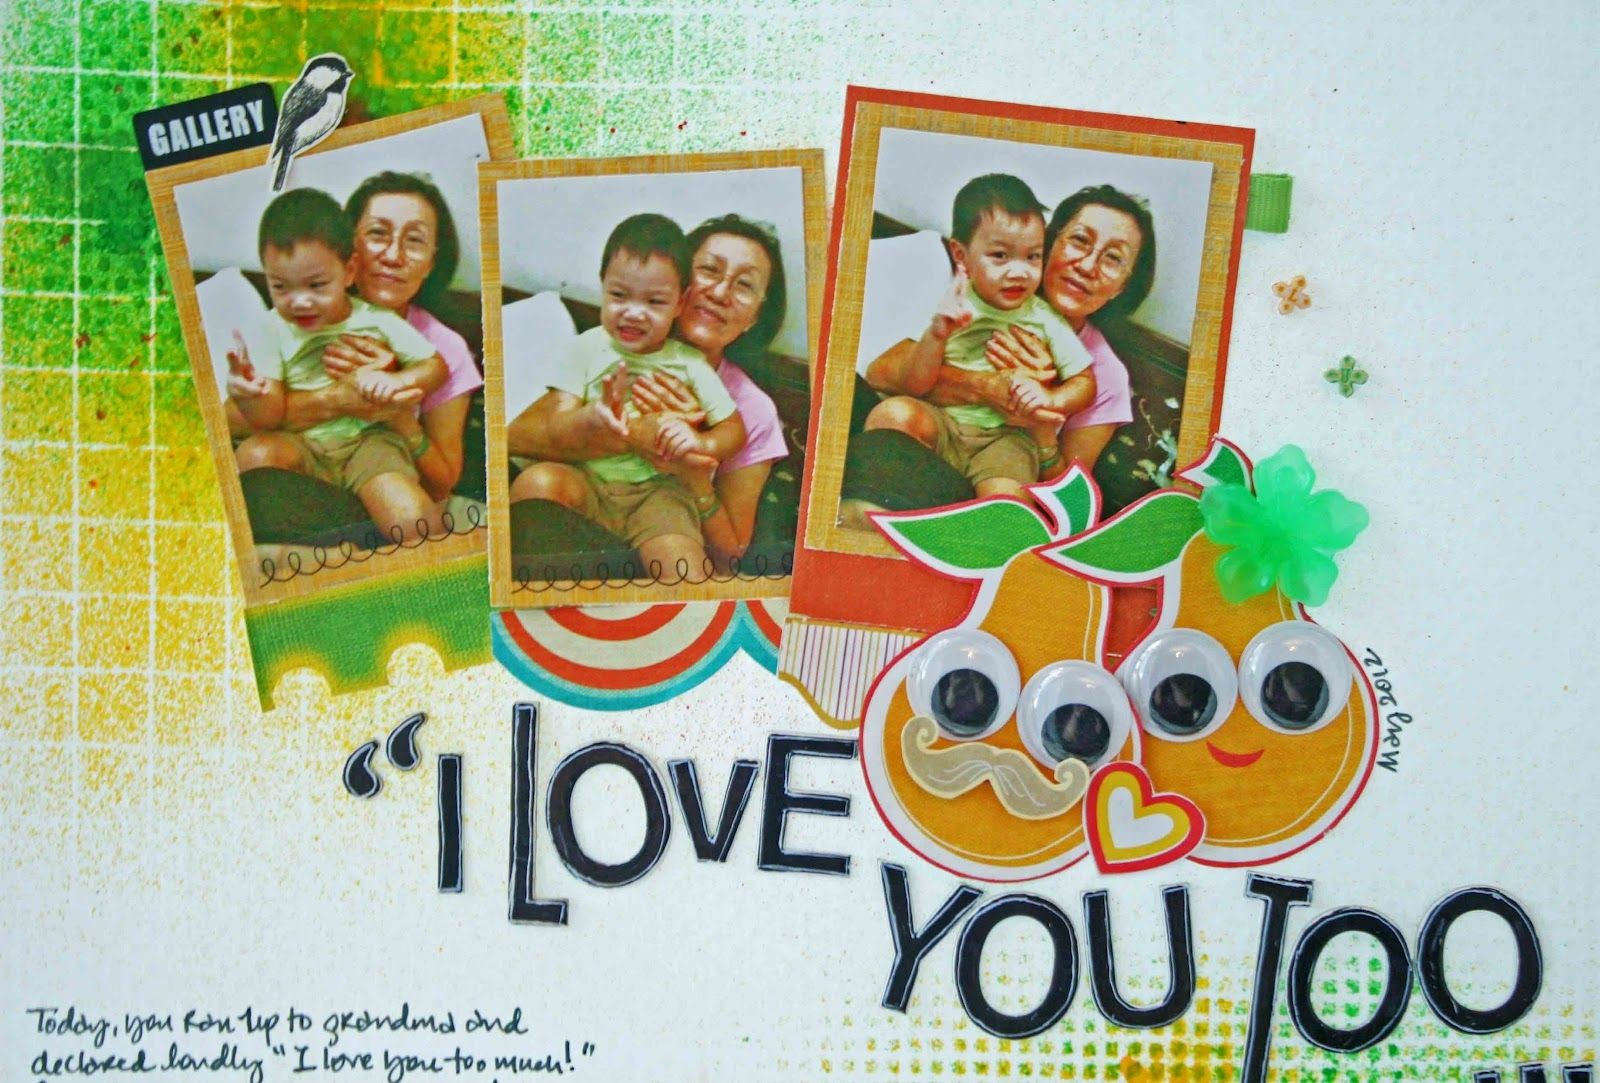 Download Wallpaper Of I Love You Too Hd New Wallpaper Of I Love